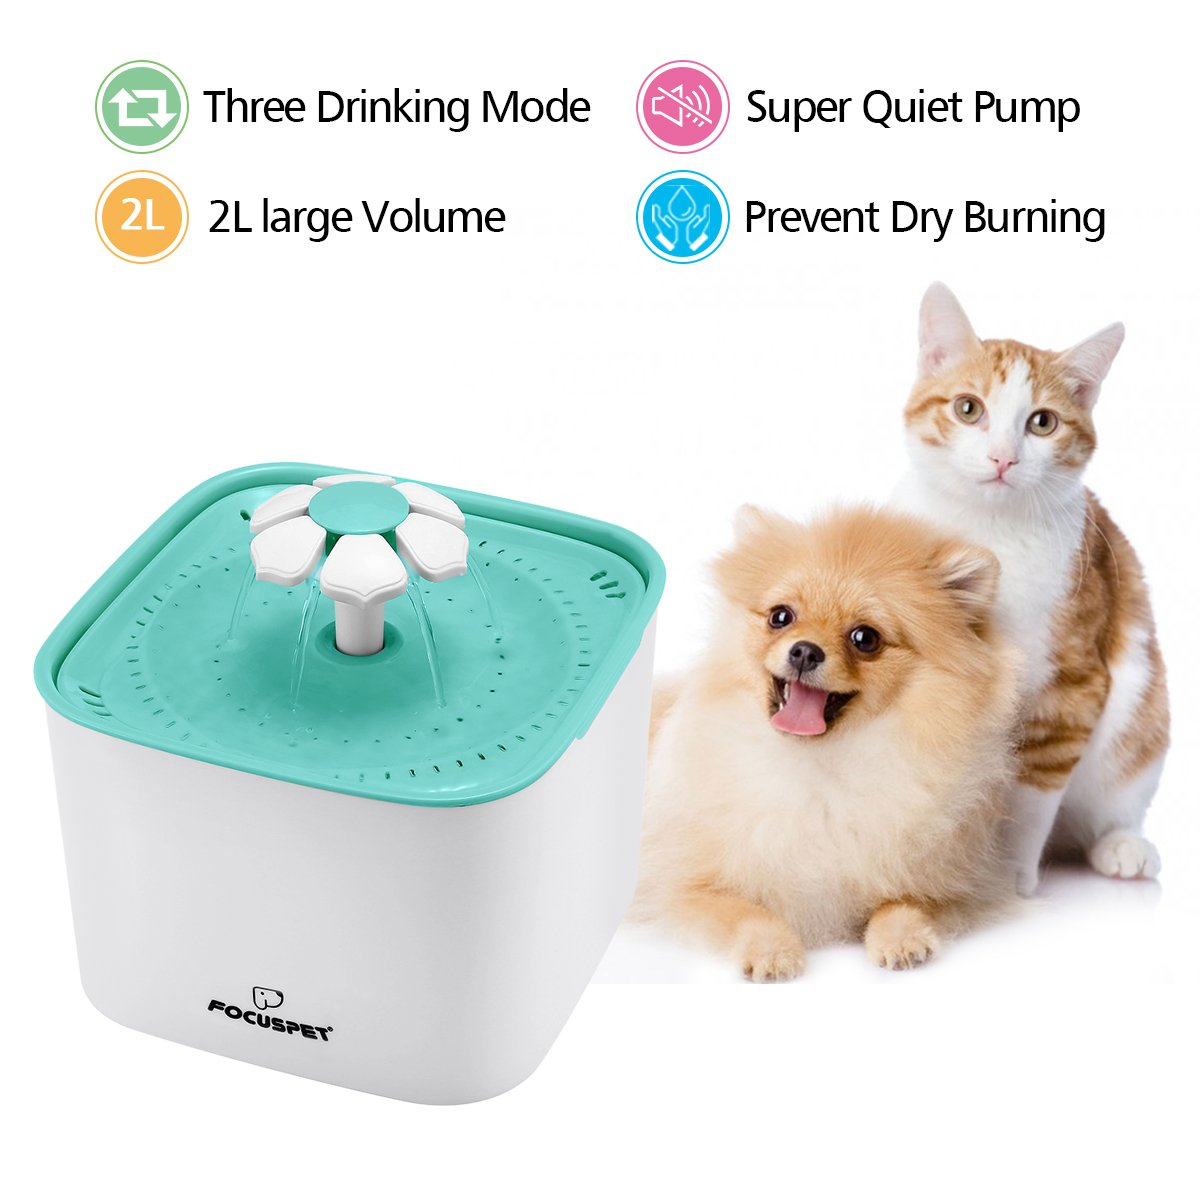 FOCUSPET Cat Fountain 2L Pet Flower Fountain Automatic Electric Pet Water Dispenser Pet Health Caring Fountain for Cat and Small Dog Animals